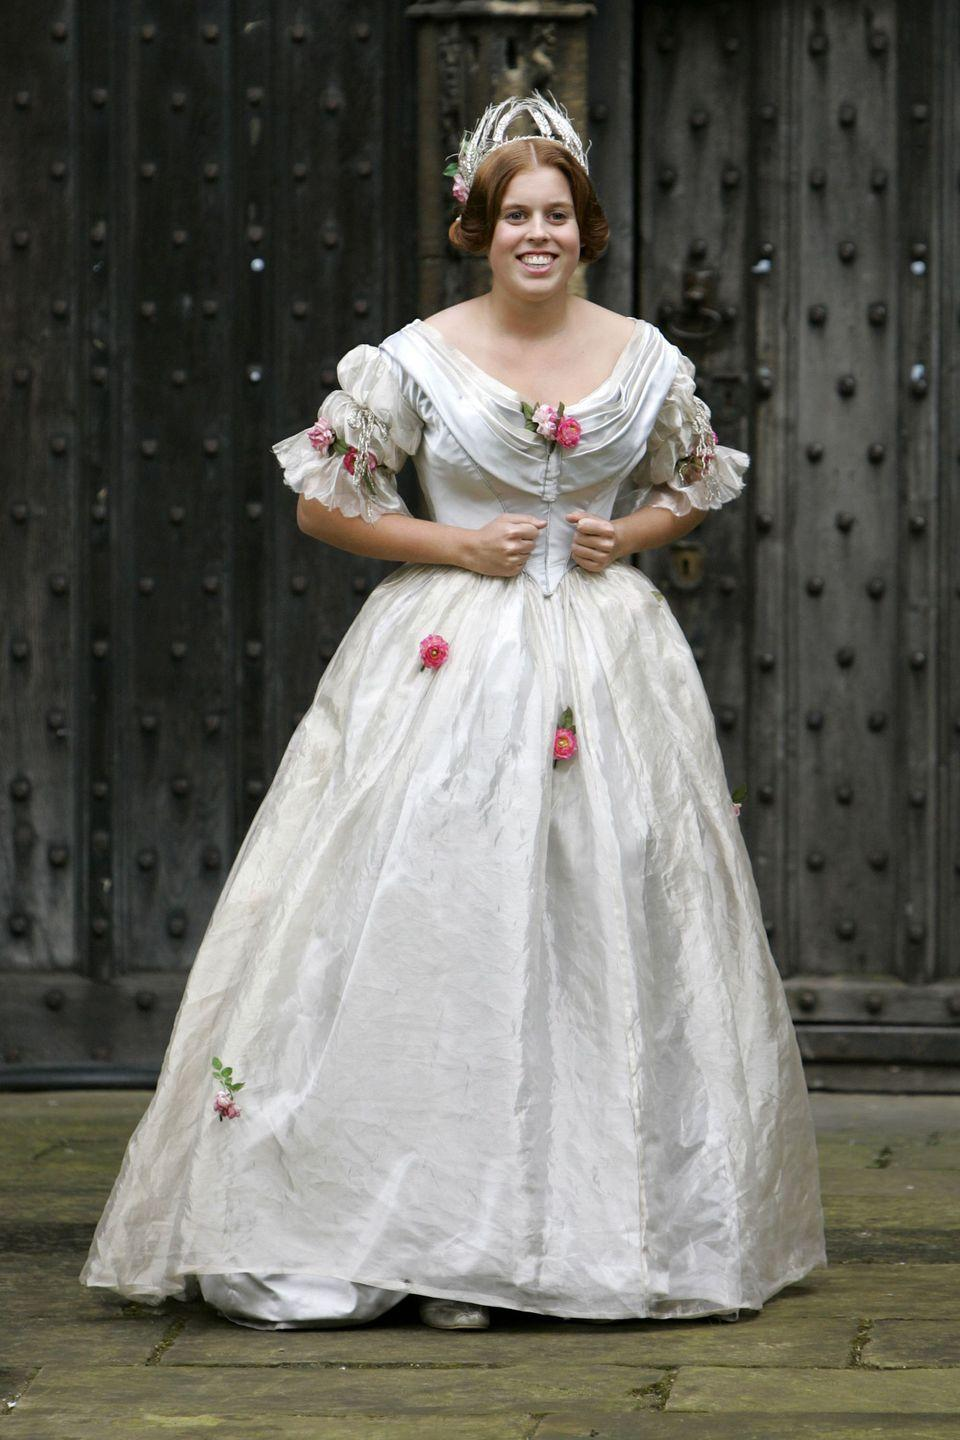 <p>Princess Beatrice dressed in a Victorian gown for her role as a ladying-in-waiting in <em>The Young Victoria</em>. </p>